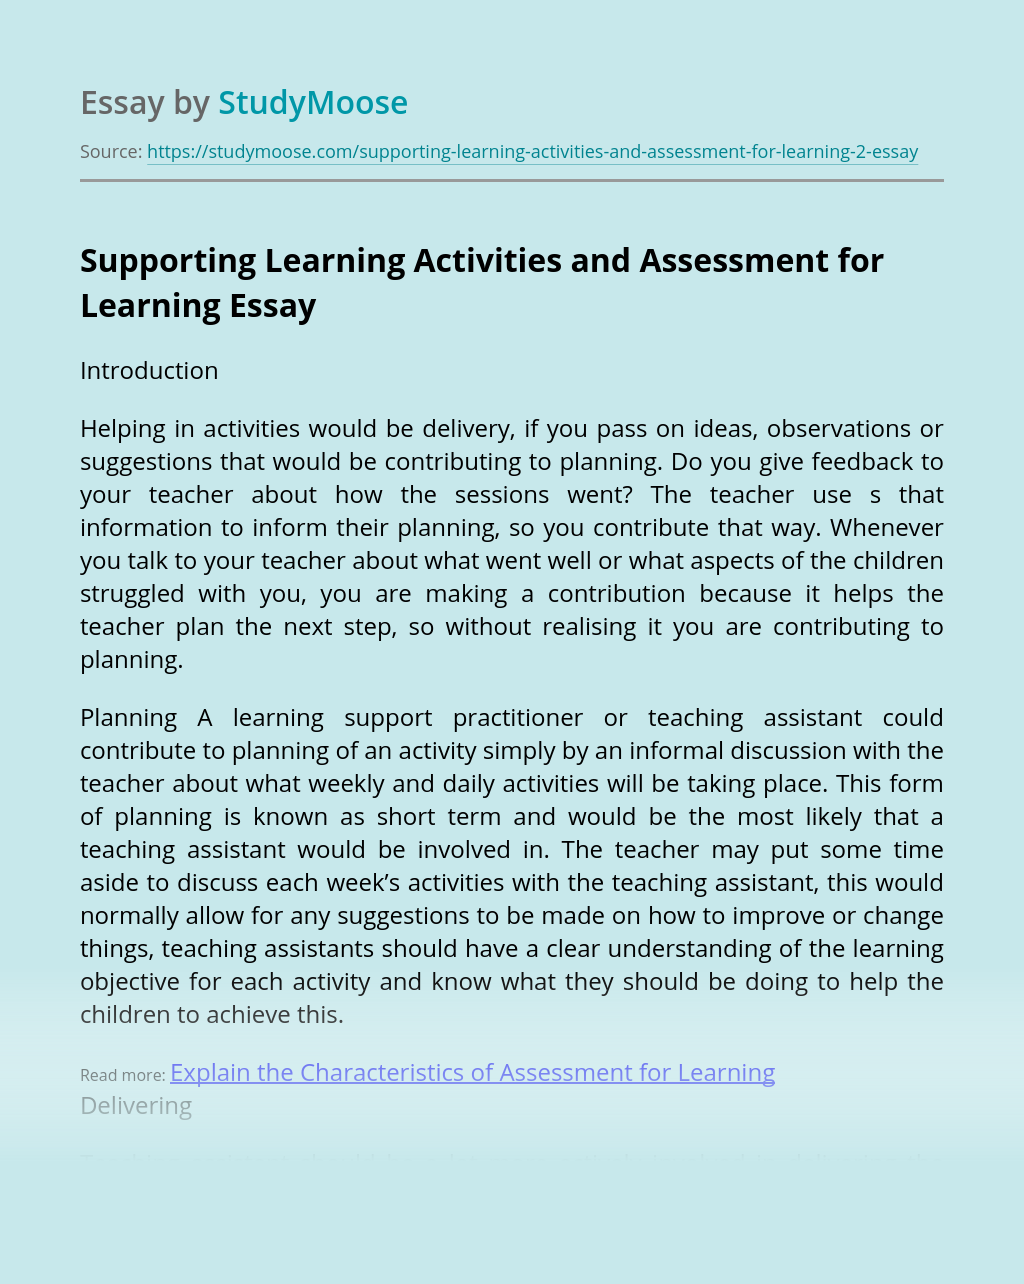 Supporting Learning Activities and Assessment for Learning